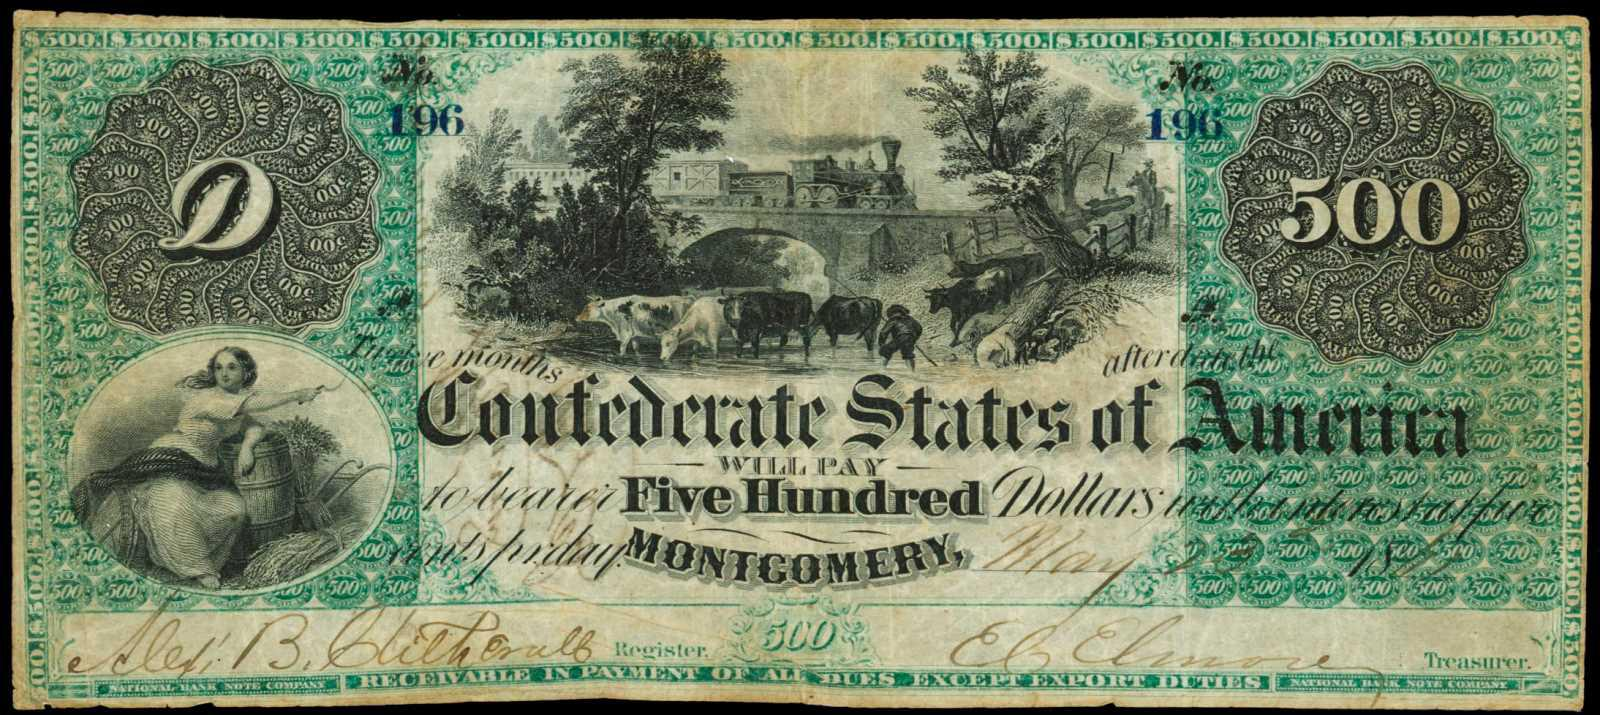 confederate paper money price guide Towards the end of the war, when confederate currency was practically worthless, upham was offering $20,000 in counterfeit csa notes for only $5 years after the war ended, upham claimed that he had printed 1,564,000 bogus notes between 1862 and 1863.